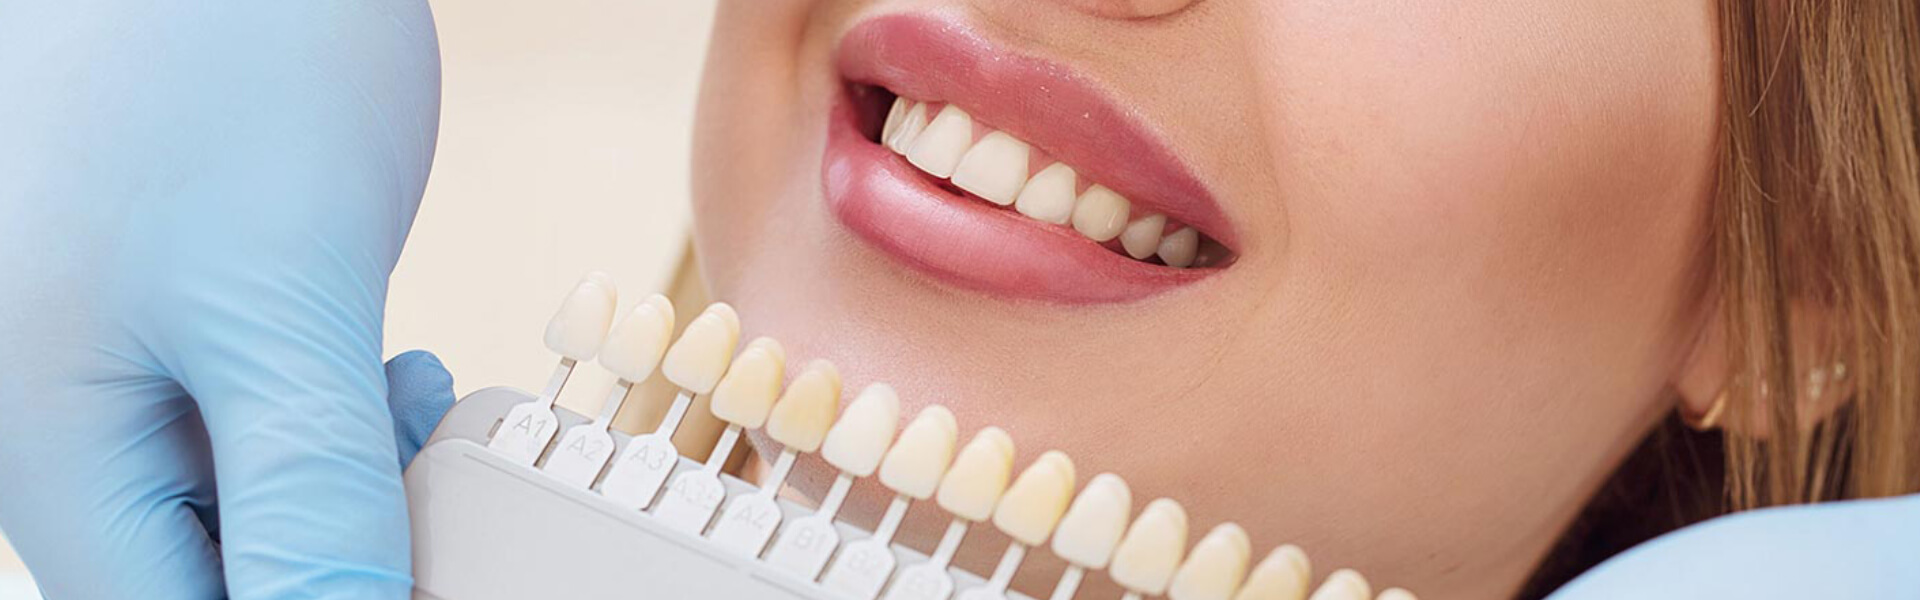 Overview Of Dental Veneers, Types, And Uses.